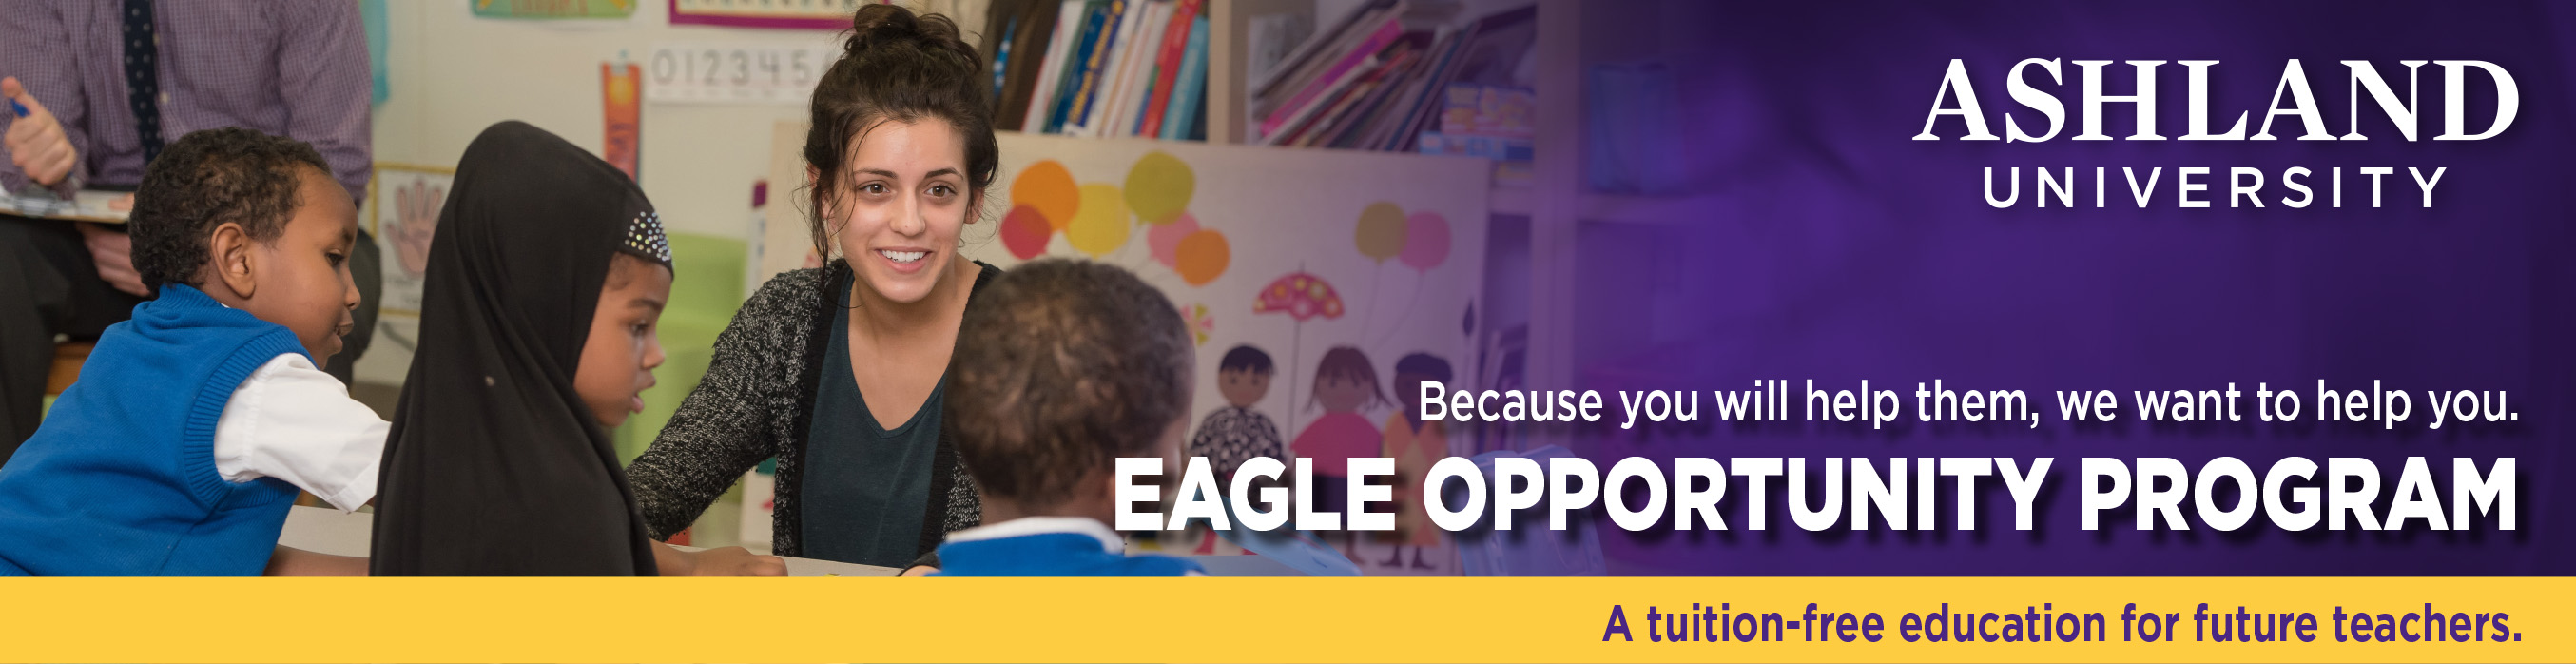 Eagle Opportunity Program - A tuition-free education for future teachers.